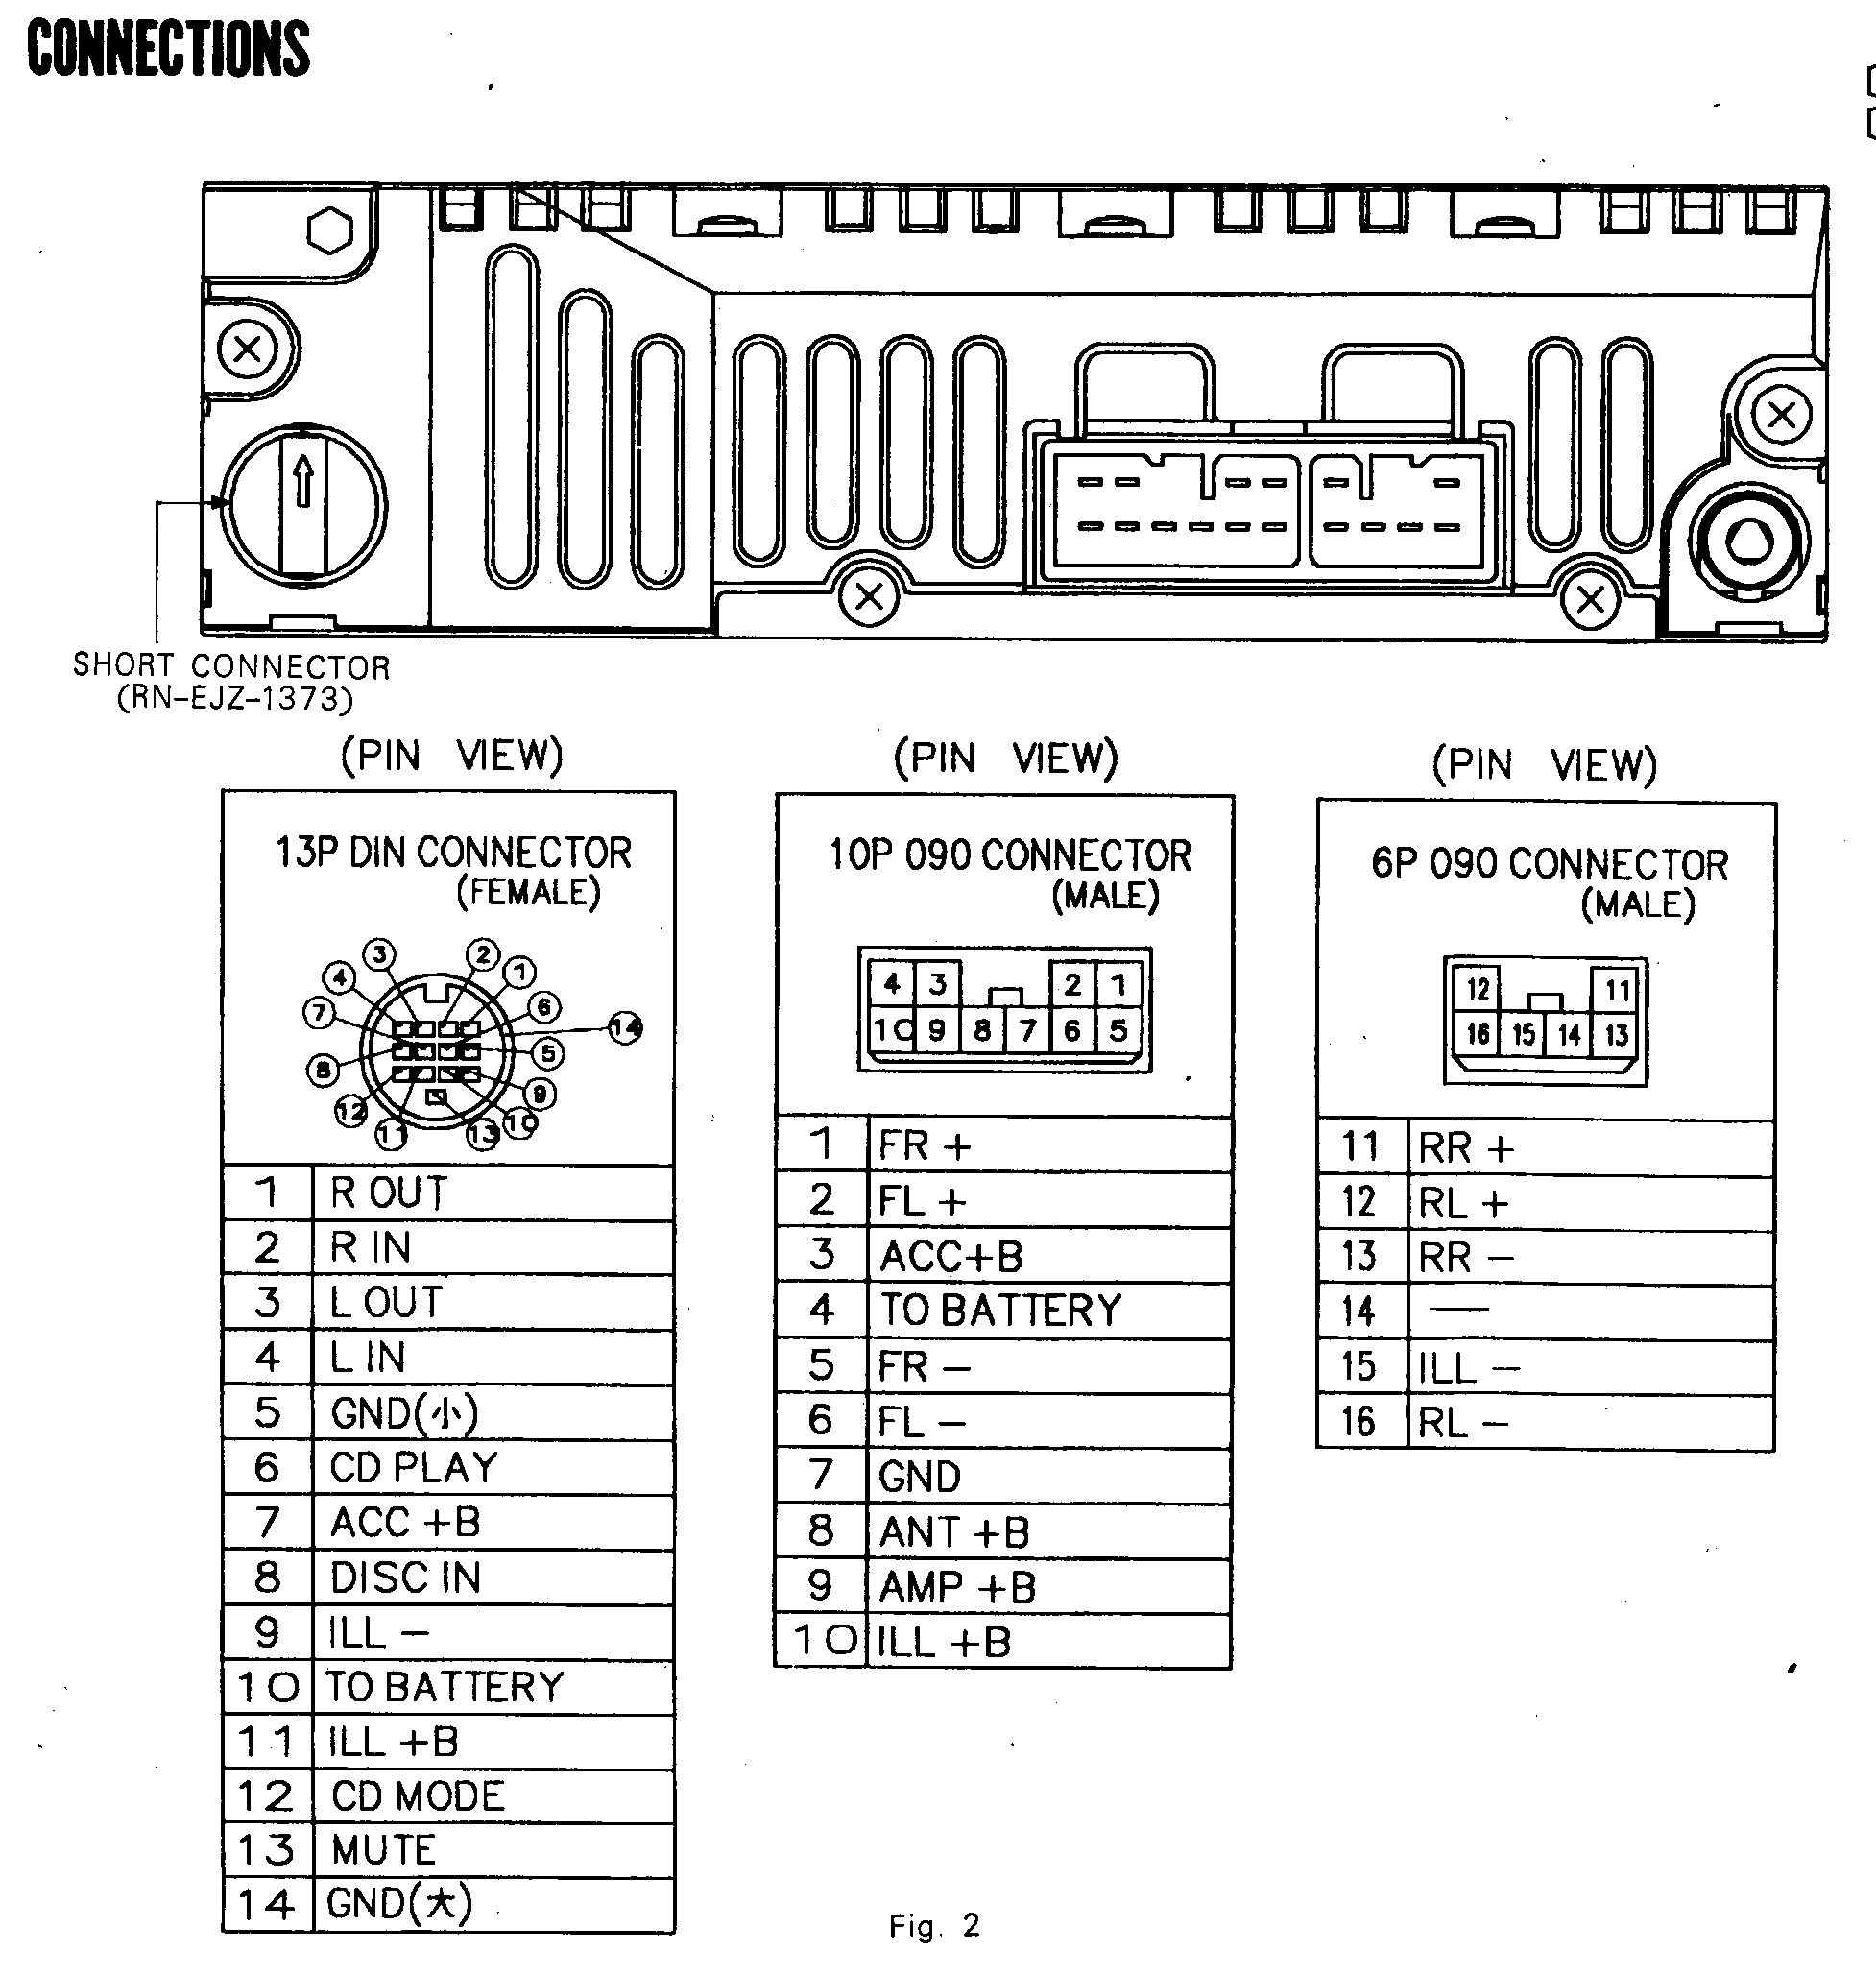 WireHarnessToy121003 car audio wire diagram codes toyota factory car stereo repair factory wiring diagrams car audio at pacquiaovsvargaslive.co